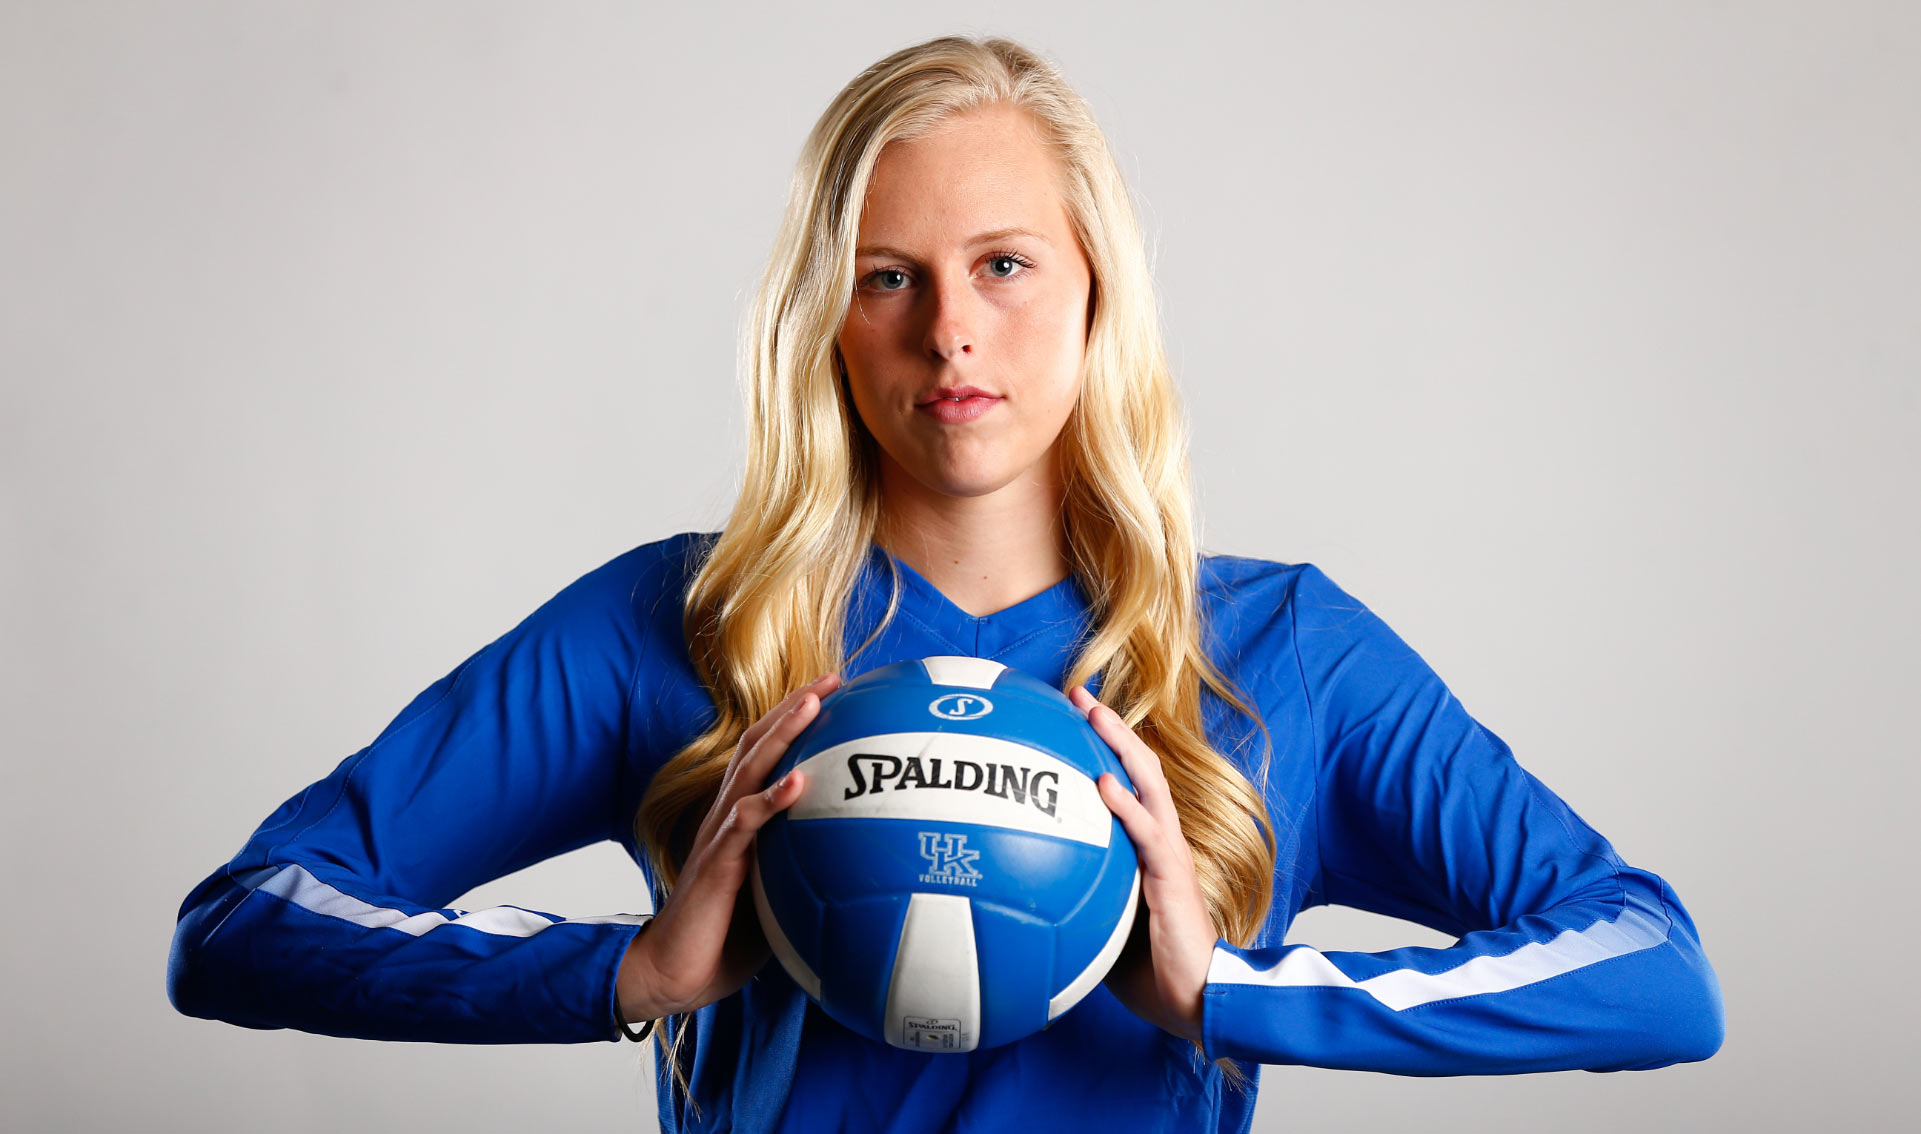 A portrait of Alli standing against a white backdrop, holding a volleyball between her palms. She looks determined and strong.